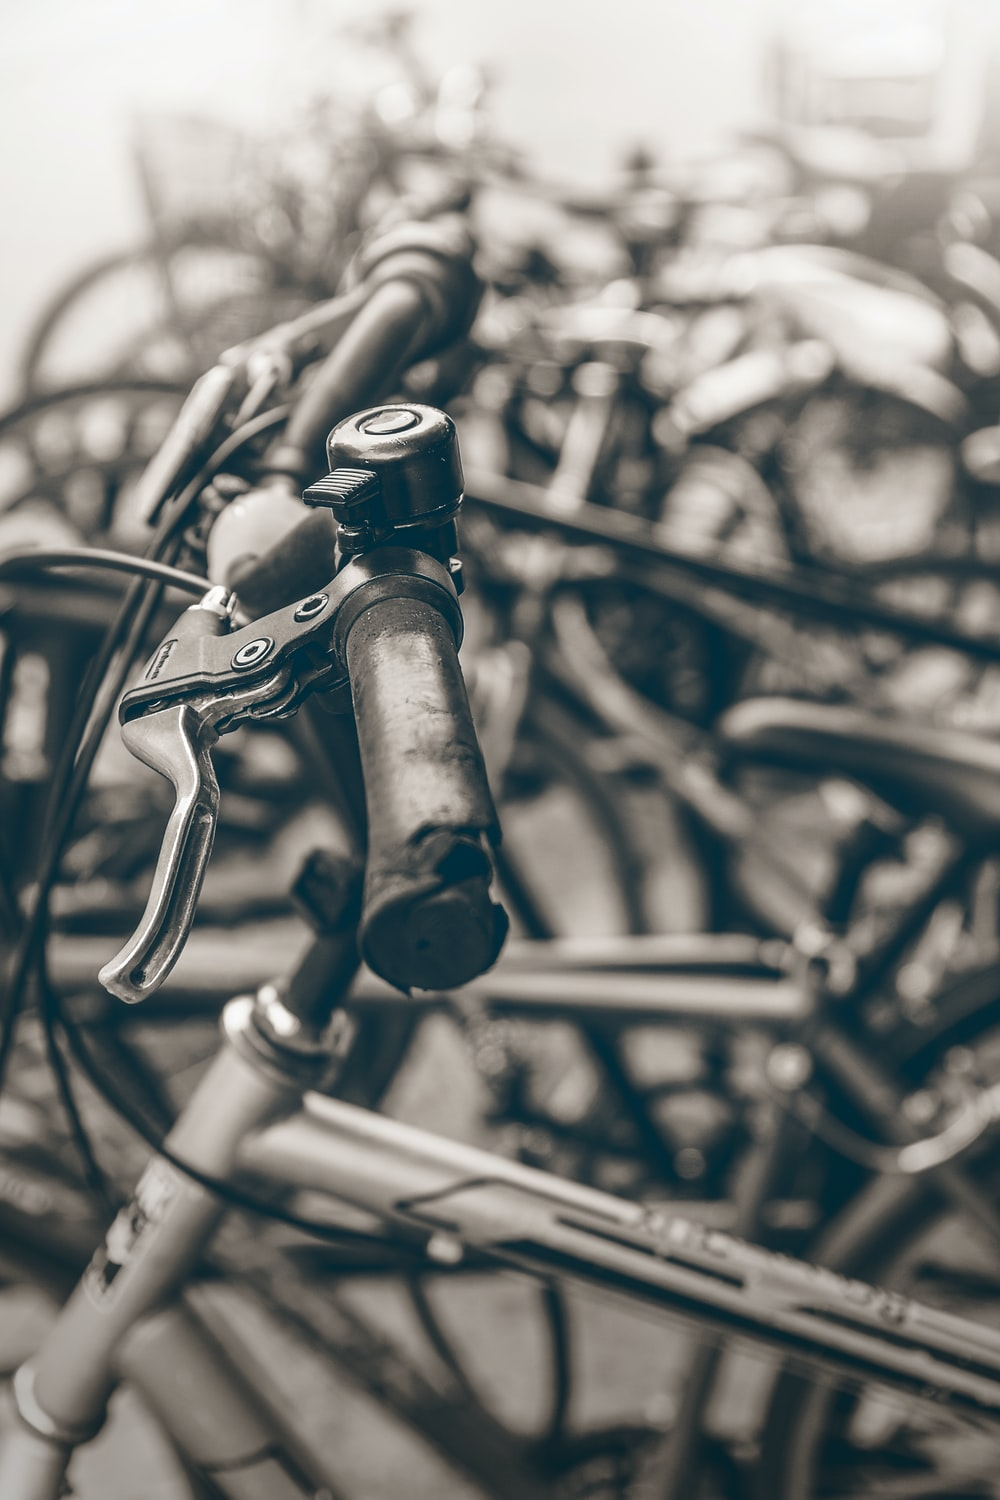 selective focus photo of gray bicycle